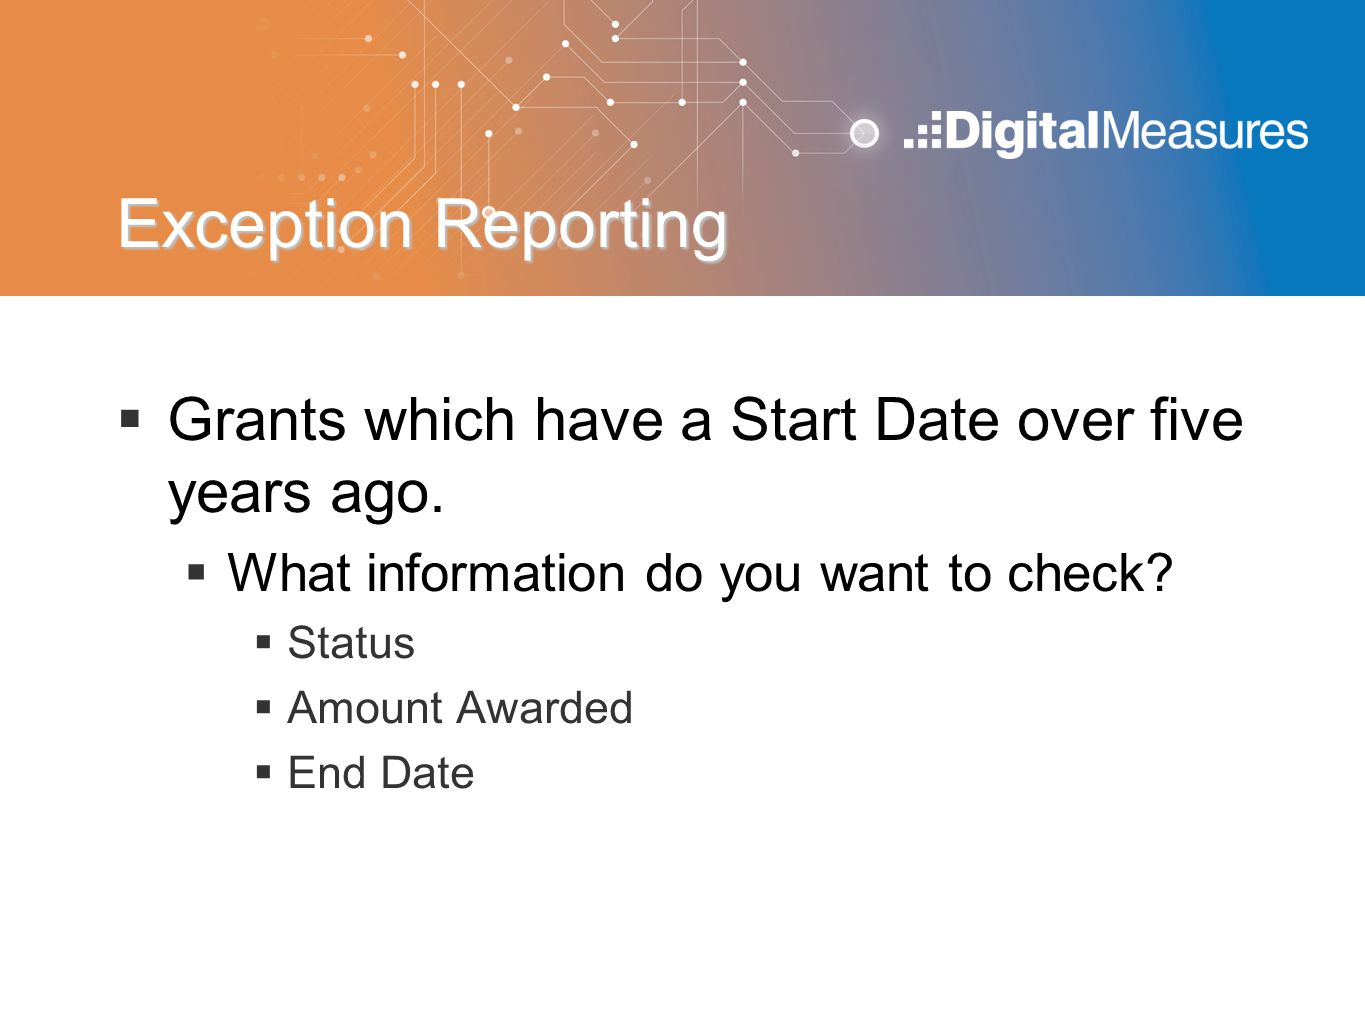 Exception Reporting Grants which have a Start Date over five years ago. What information do you want to check